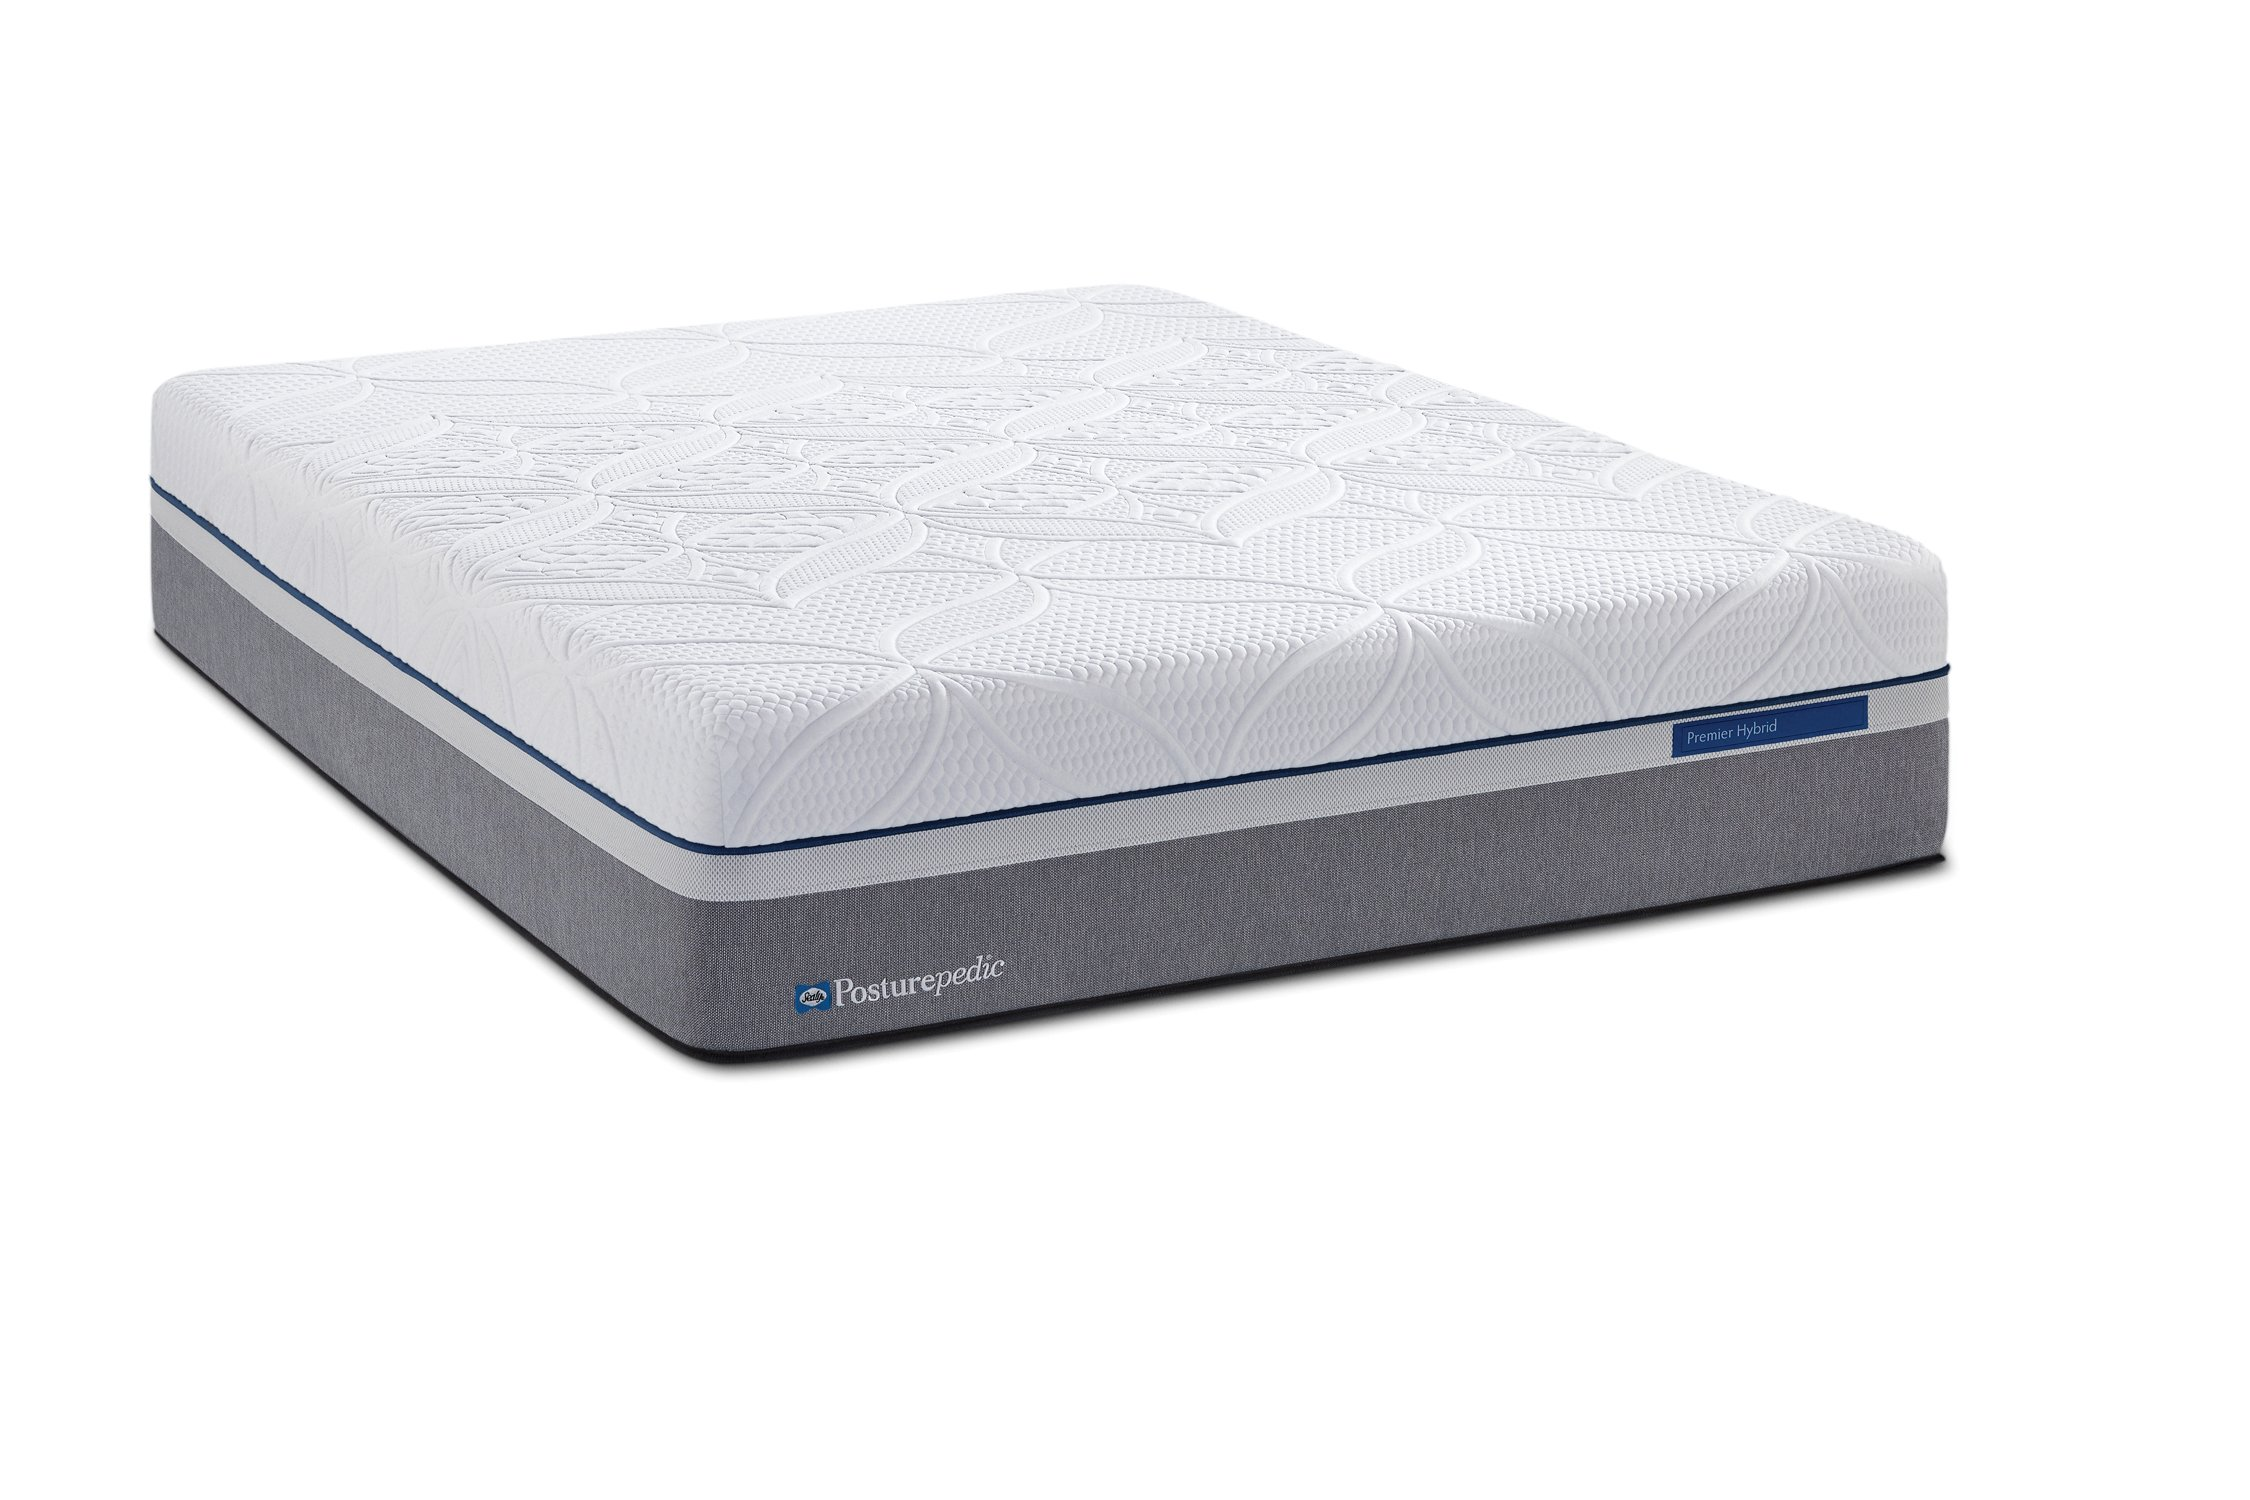 Sealy Posturepedic Hybrid Copper Cushion Firm Mattress, Queen